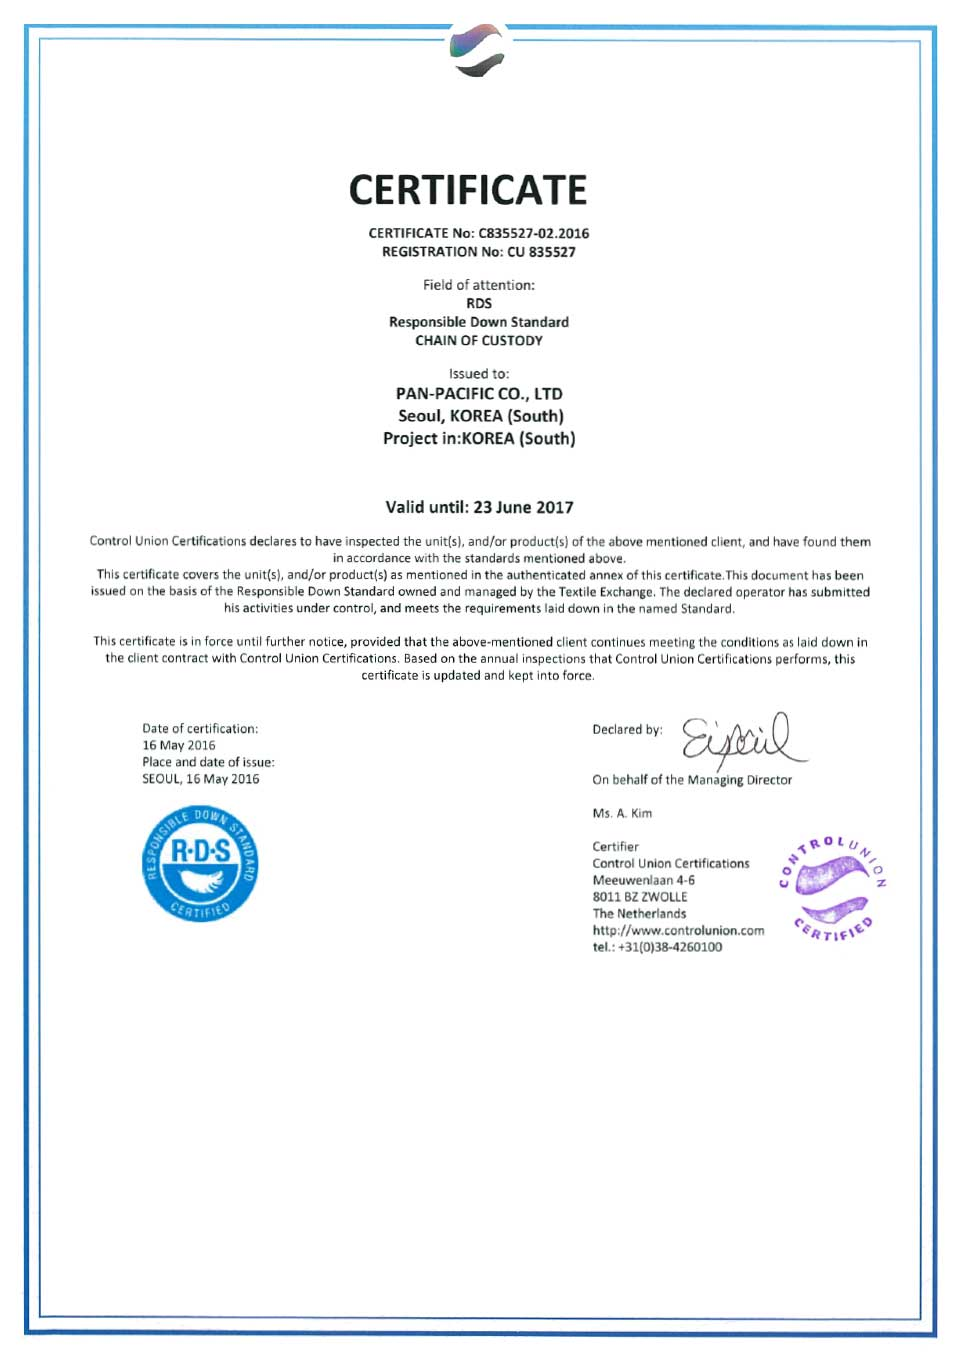 certification_rds